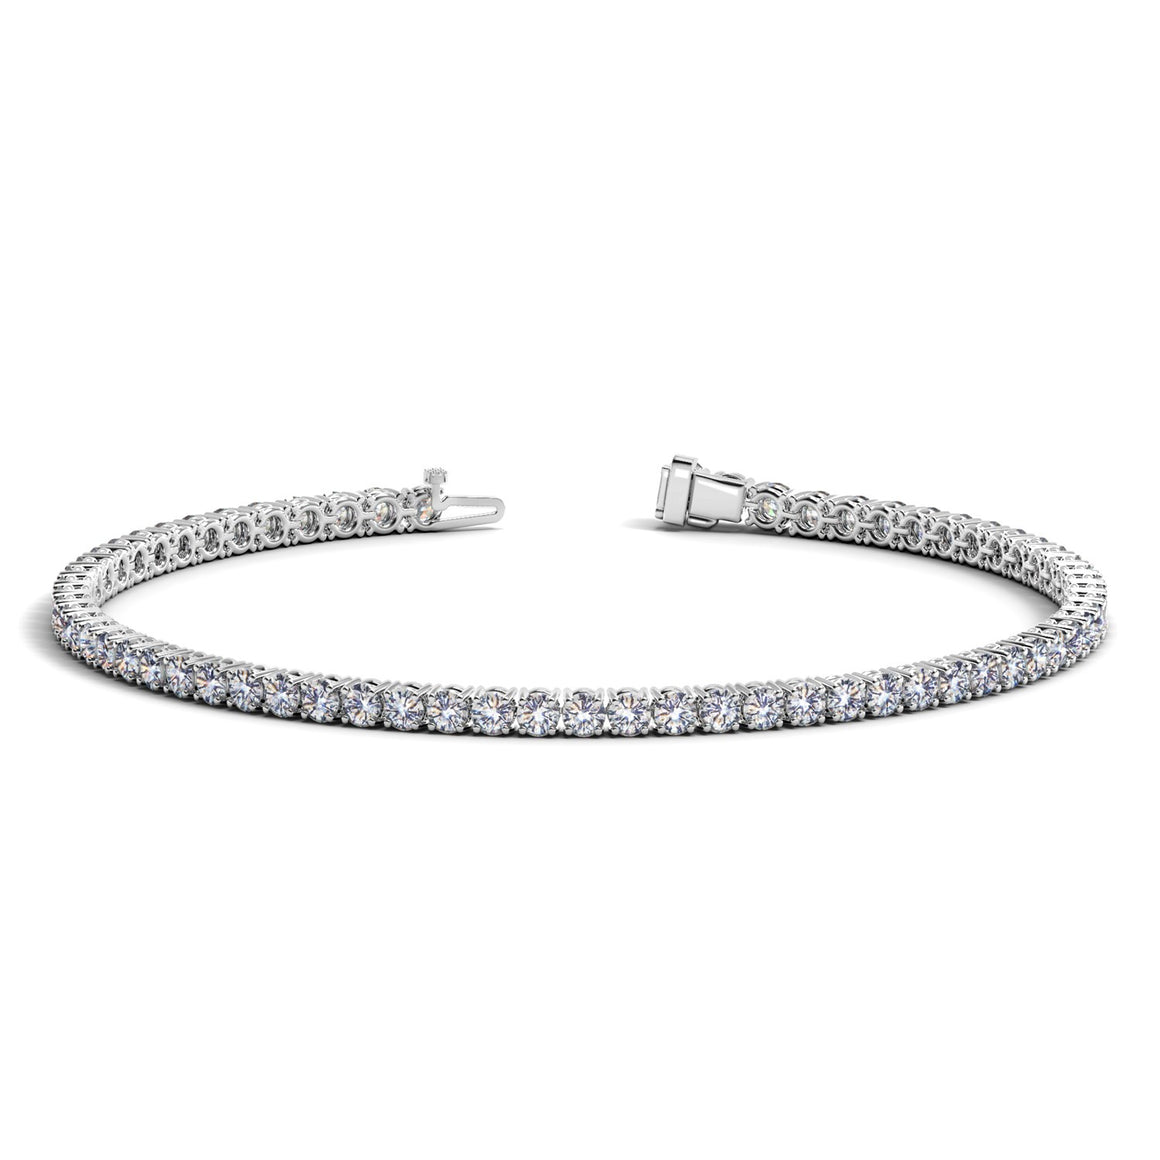 14k White Gold Round Diamond Tennis Bracelet (3 cttw)